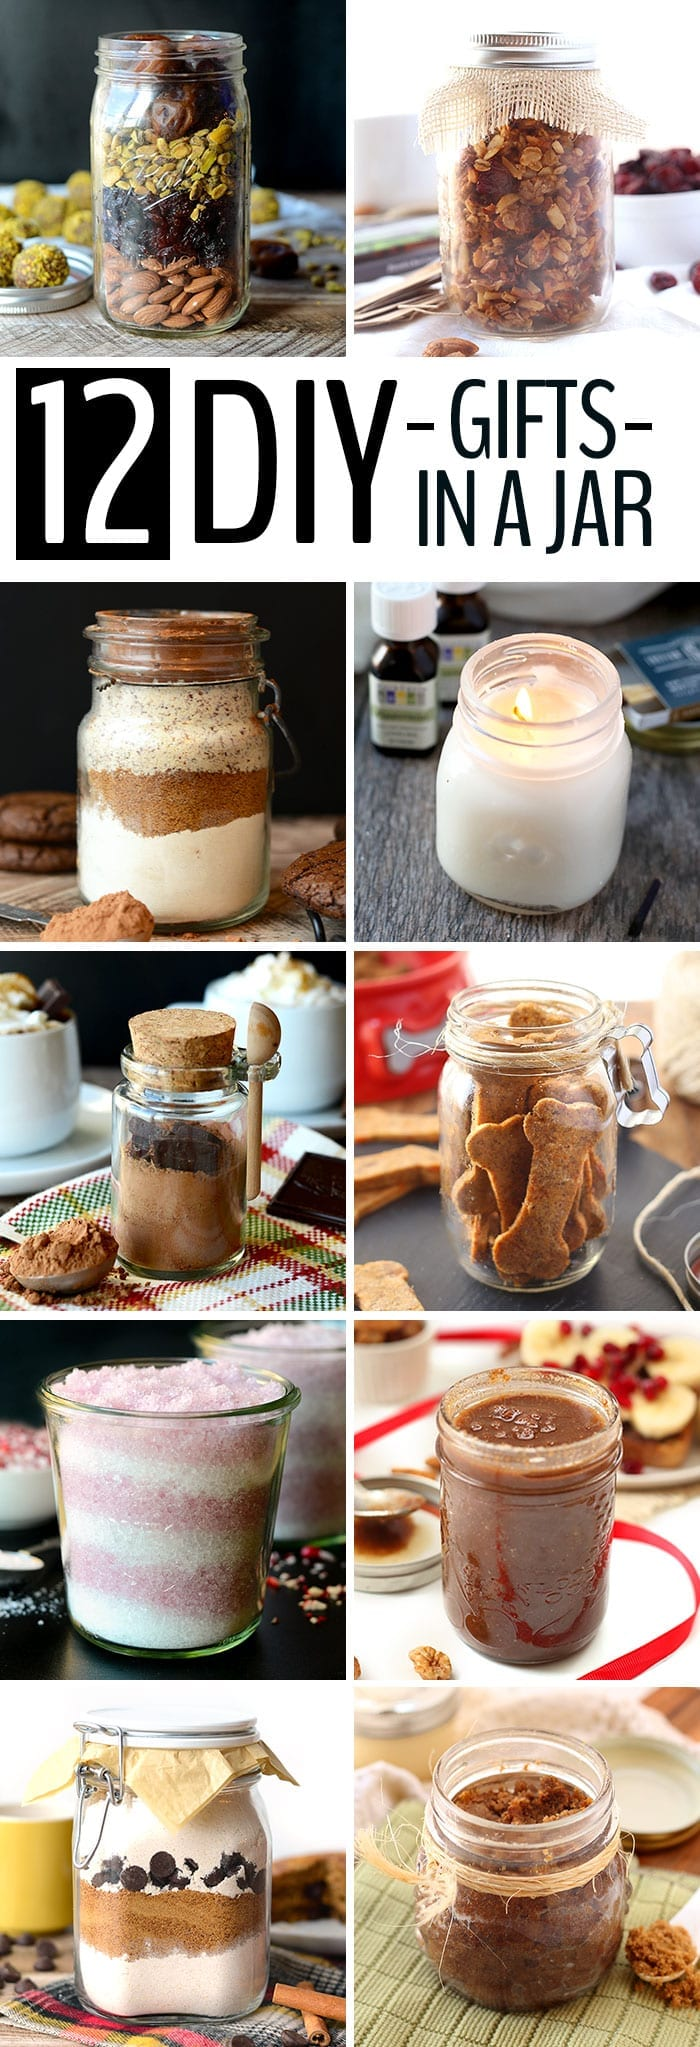 12 DIY Holiday Gifts In A Jar - The Healthy Maven